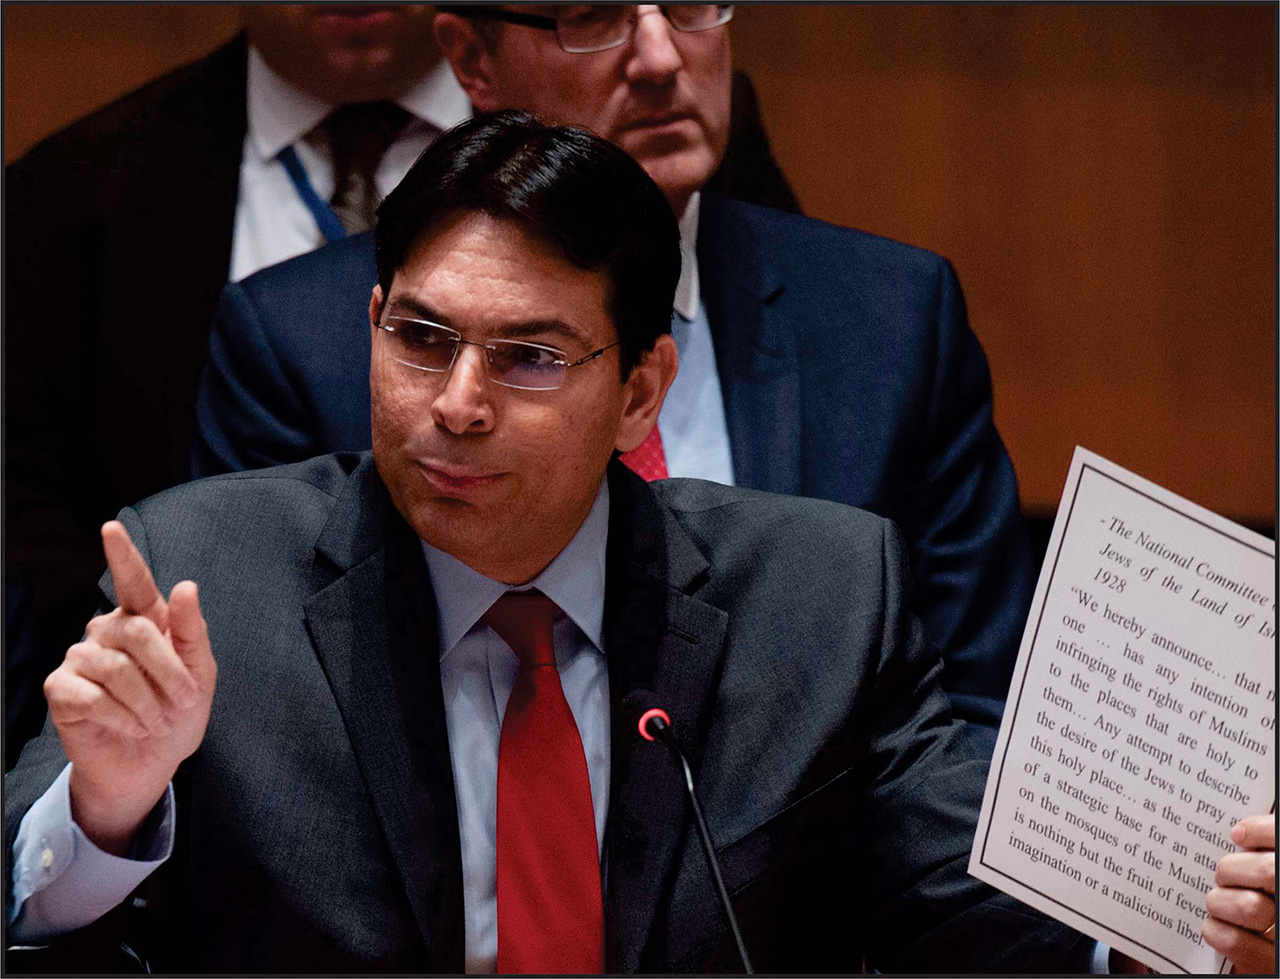 Israel's UN Ambassador, Danny Danon, delivers a speech at the UN. Photo: Kim Haughton